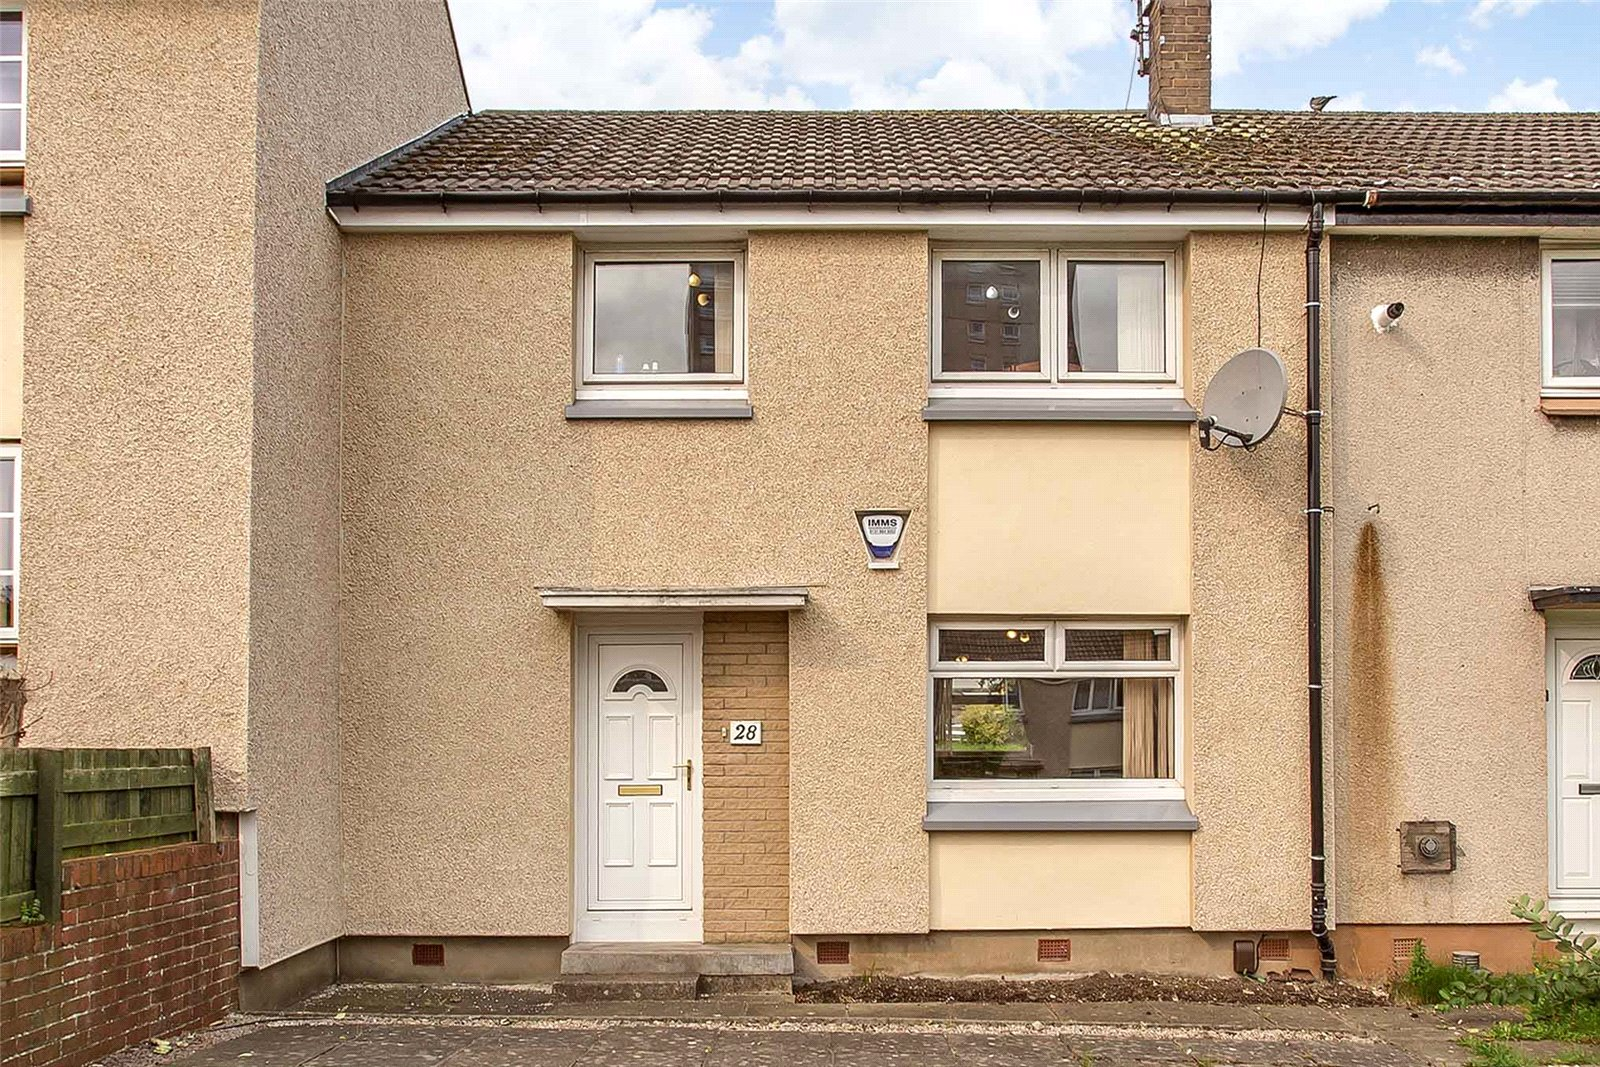 Offers over £149,000: Deceptively spacious family home in Edinburgh